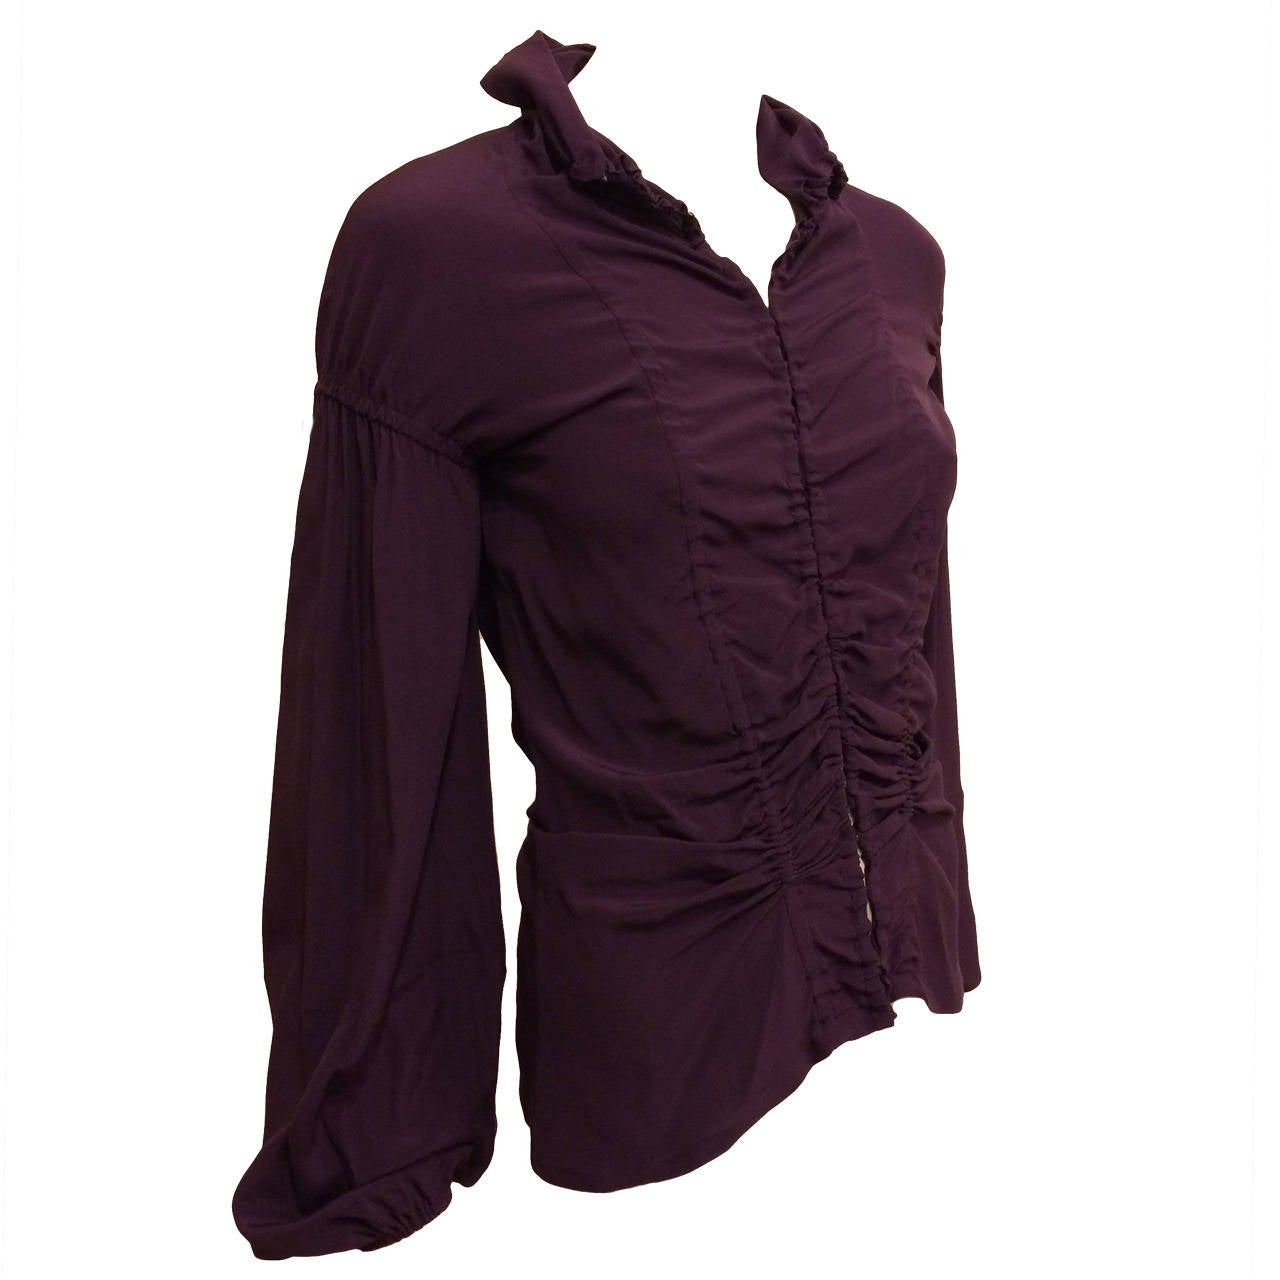 Yves Saint Laurent Purple Ruched Blouse For Sale